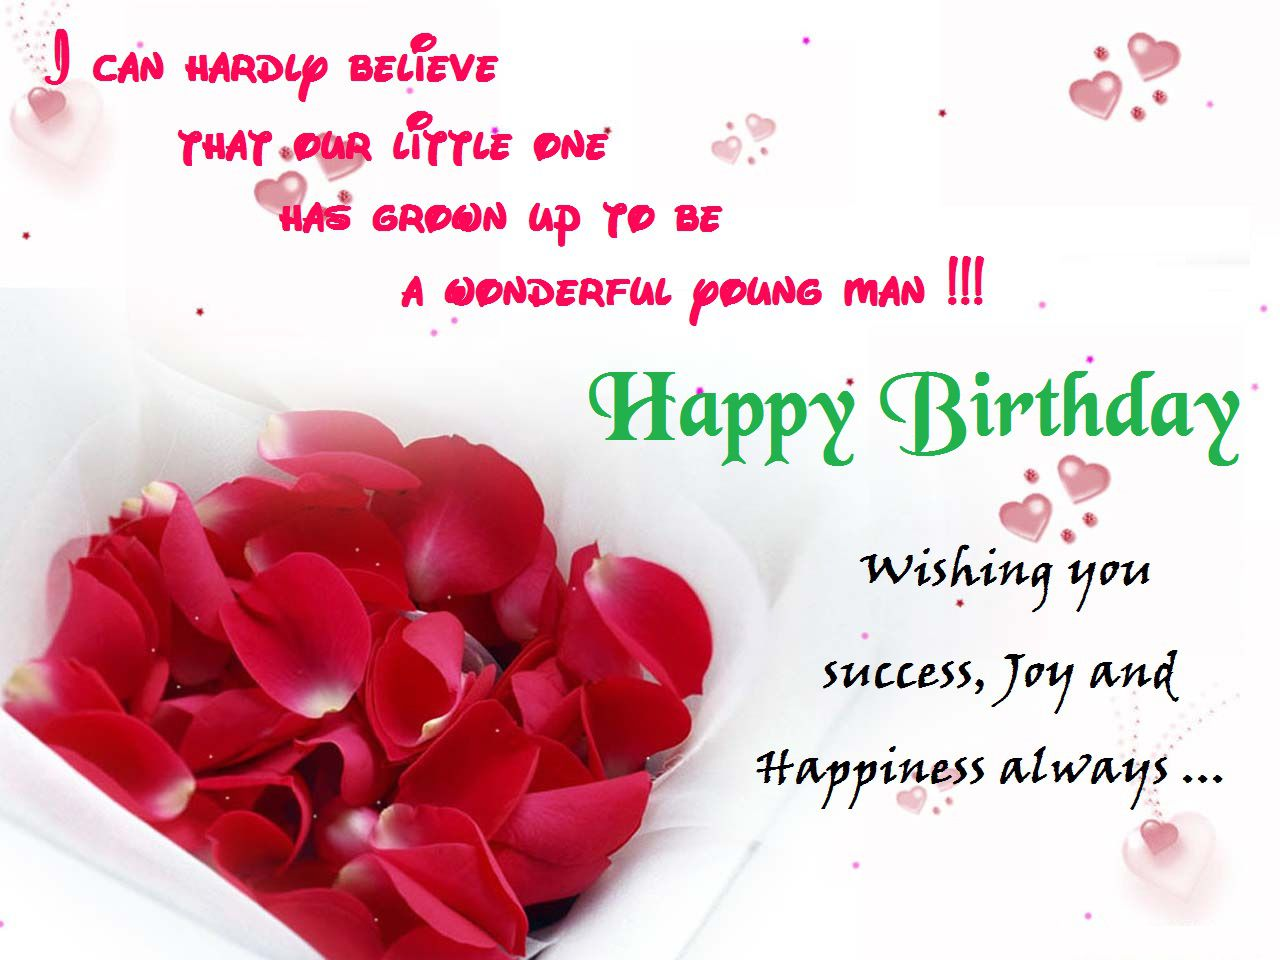 birthday greeting cards for brother free download ; 511a445fb239a7a00f89246da4e7fc81